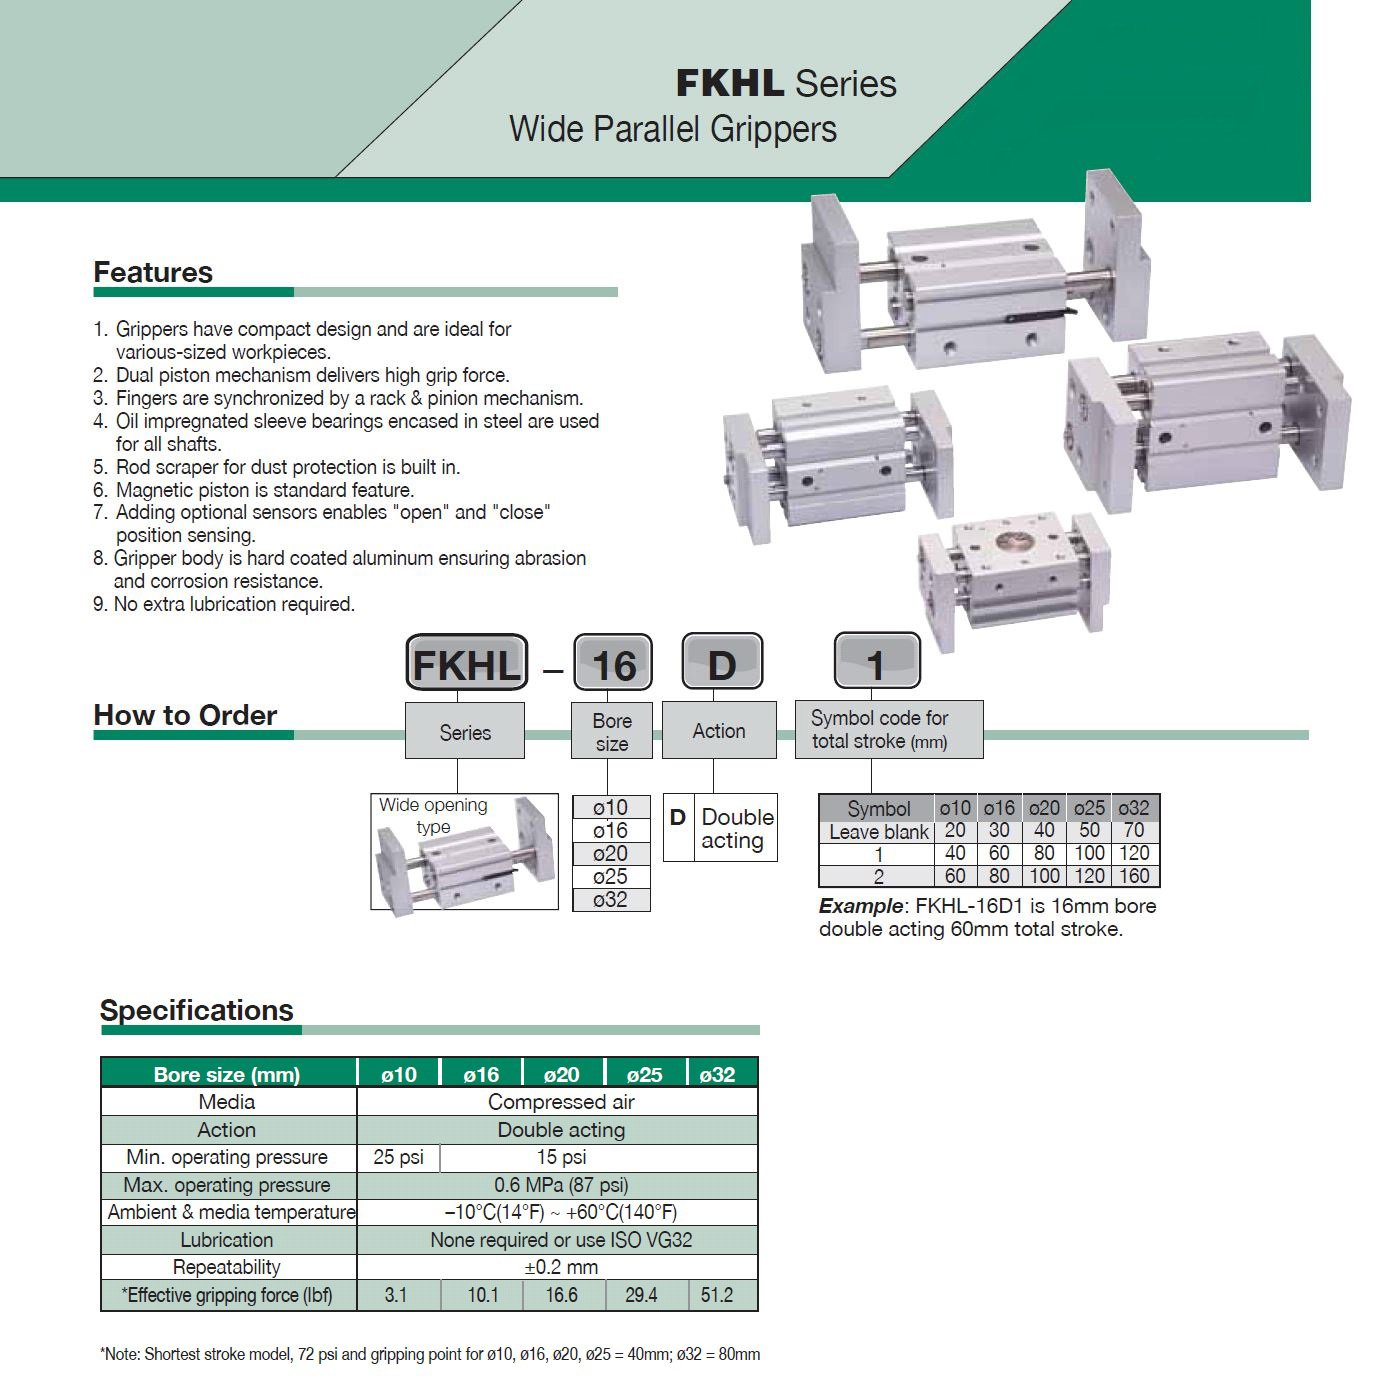 160 mm Total Stroke FAB   FKHL-32D2 Double Acting Fabco-Air FKHL-32D2 Wide Parallel Pneumatic Gripper 32 mm Bore